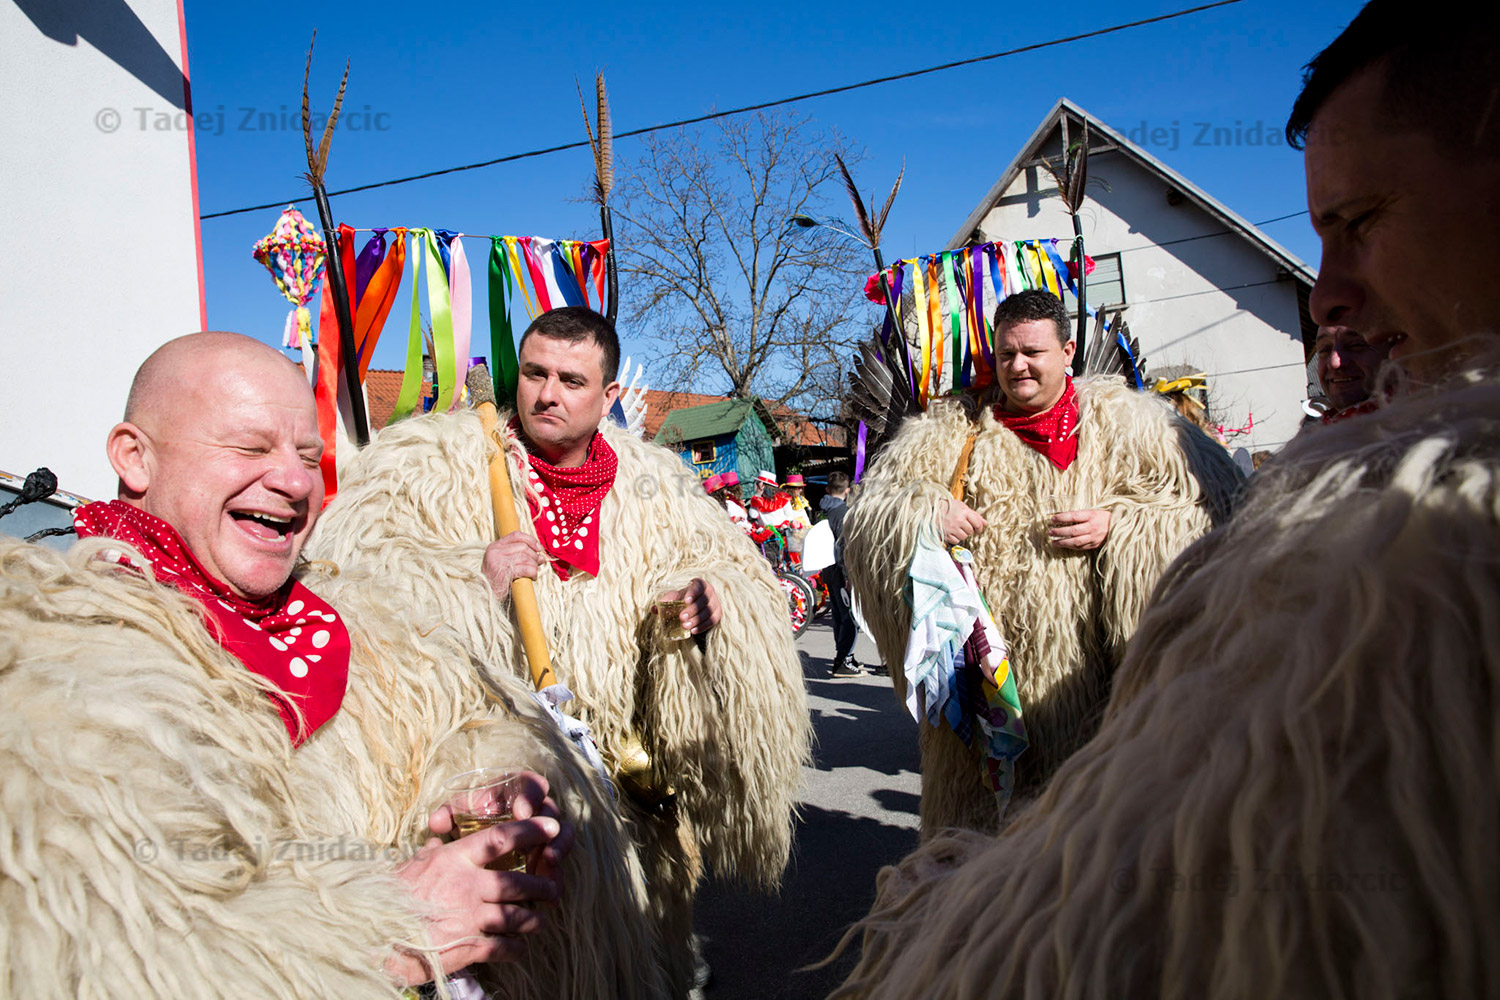 Few days later Fasenk, a traditional celebration in Zabovci, was held. The mood was festive from the get-go.